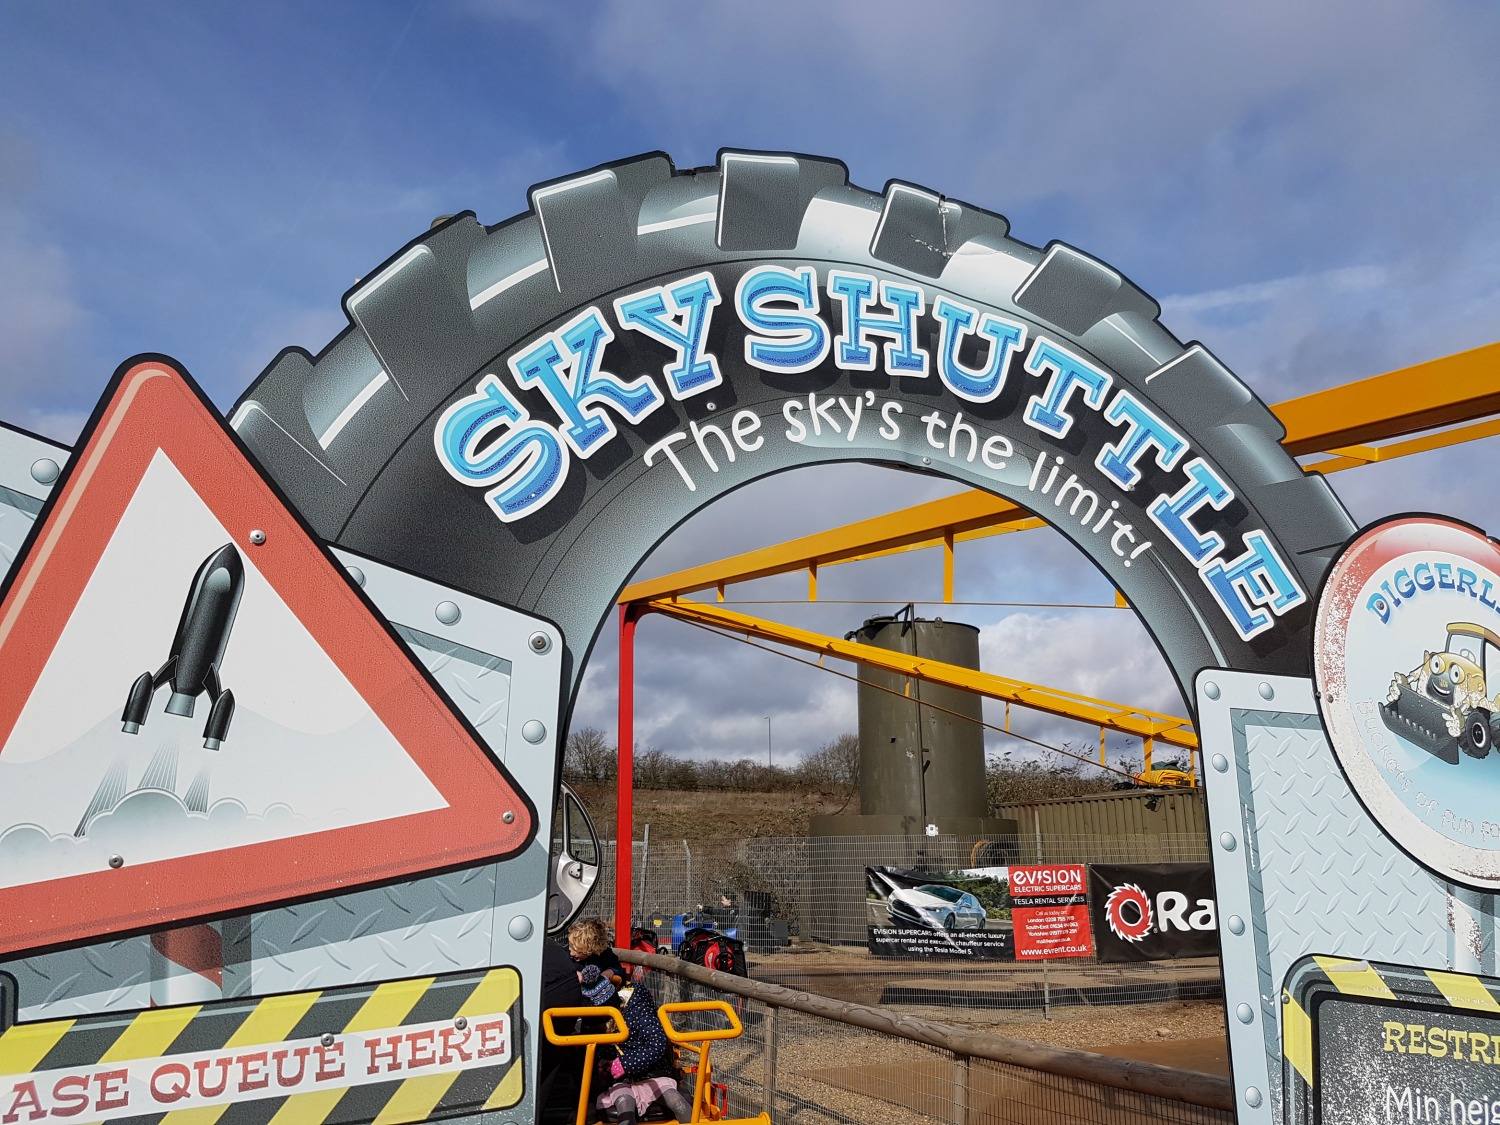 The Sky Shuttle ride at Diggerland Kent - one of the attractions on this family day out